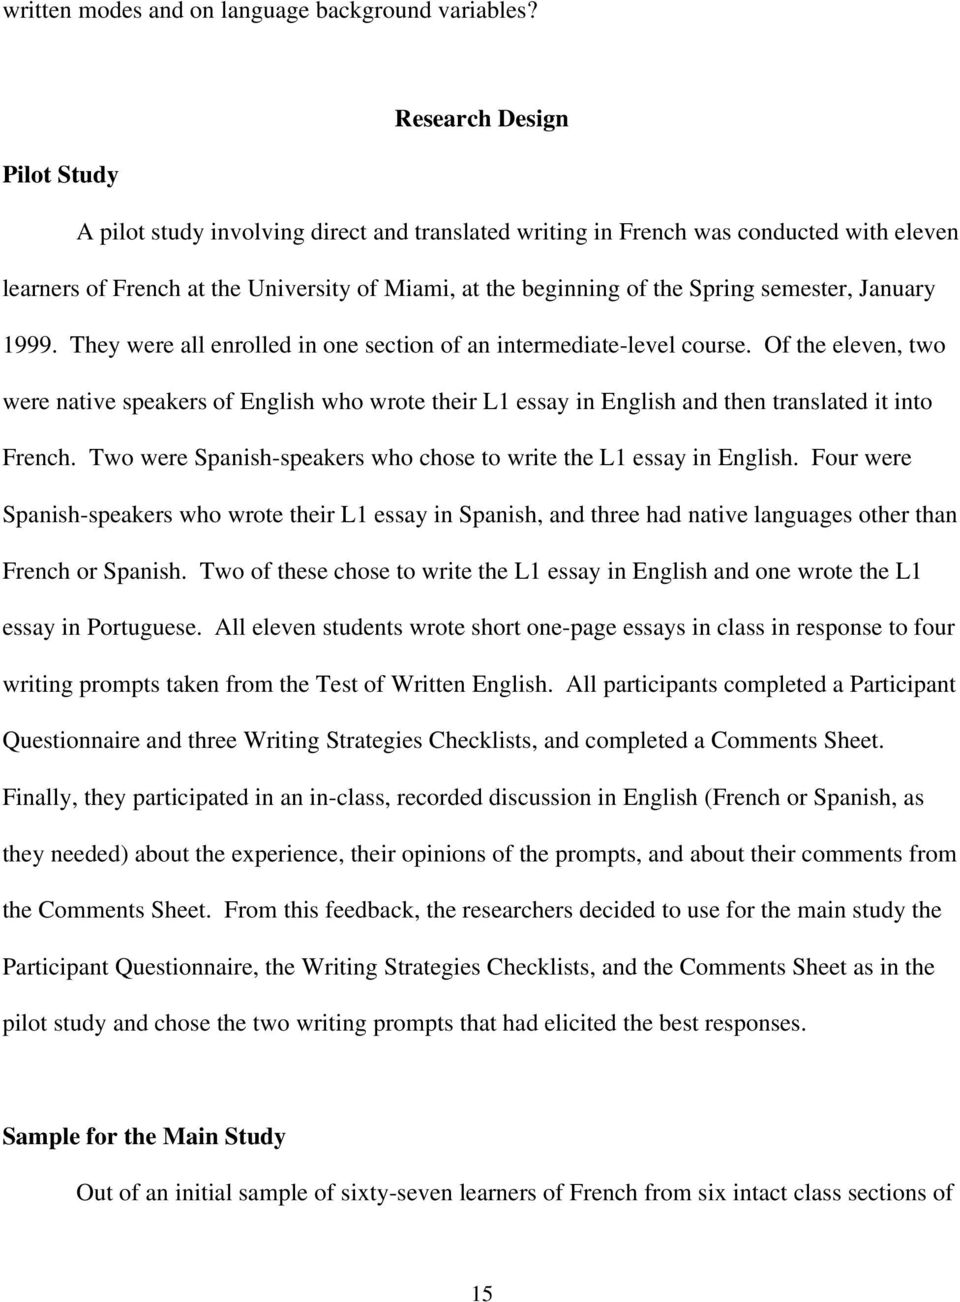 001 Essay Meaning In Spanish Example Direct Vs Translated Writing What Students Do And The Google Translate Pa Write Your My Teaching Essays Phrases How To An About Yourself Marvelous English Means Friend Full